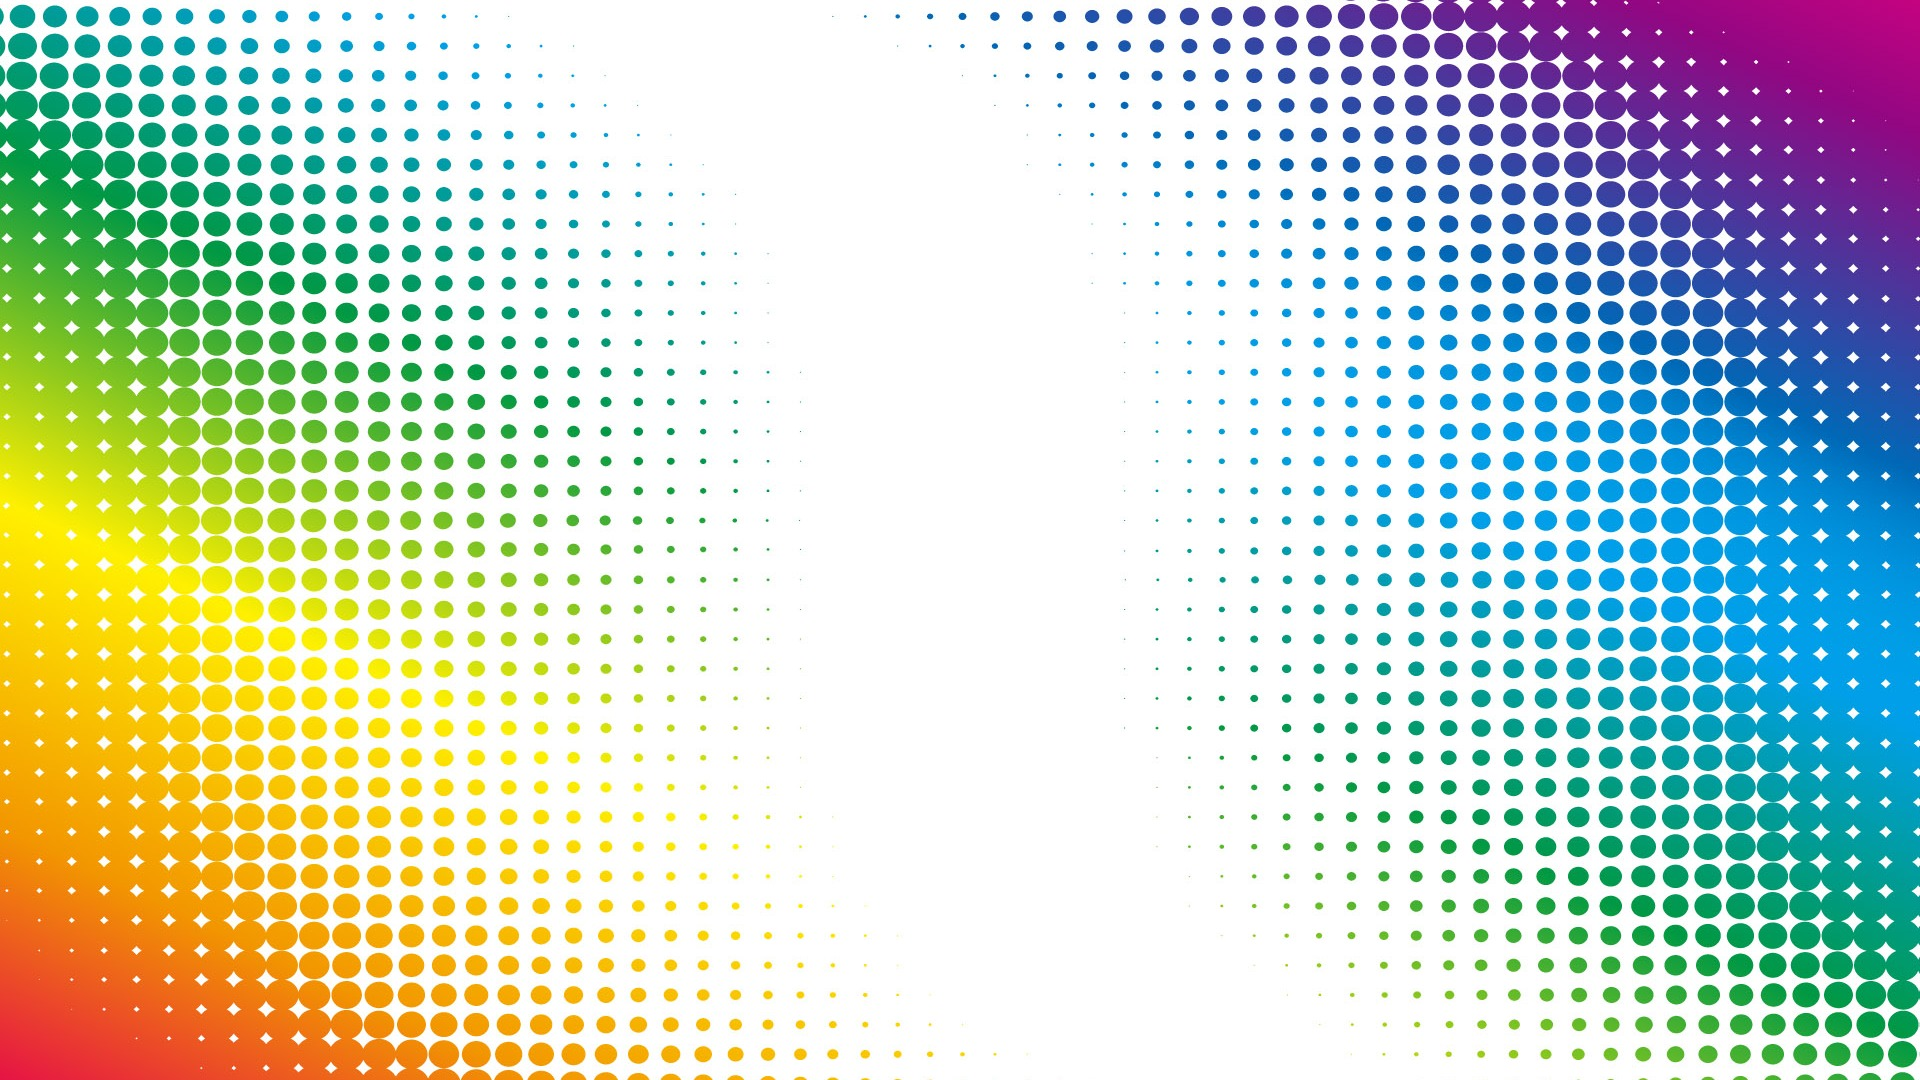 Colorful Vector Background Wallpaper 1 6 1920x1080 Wallpaper